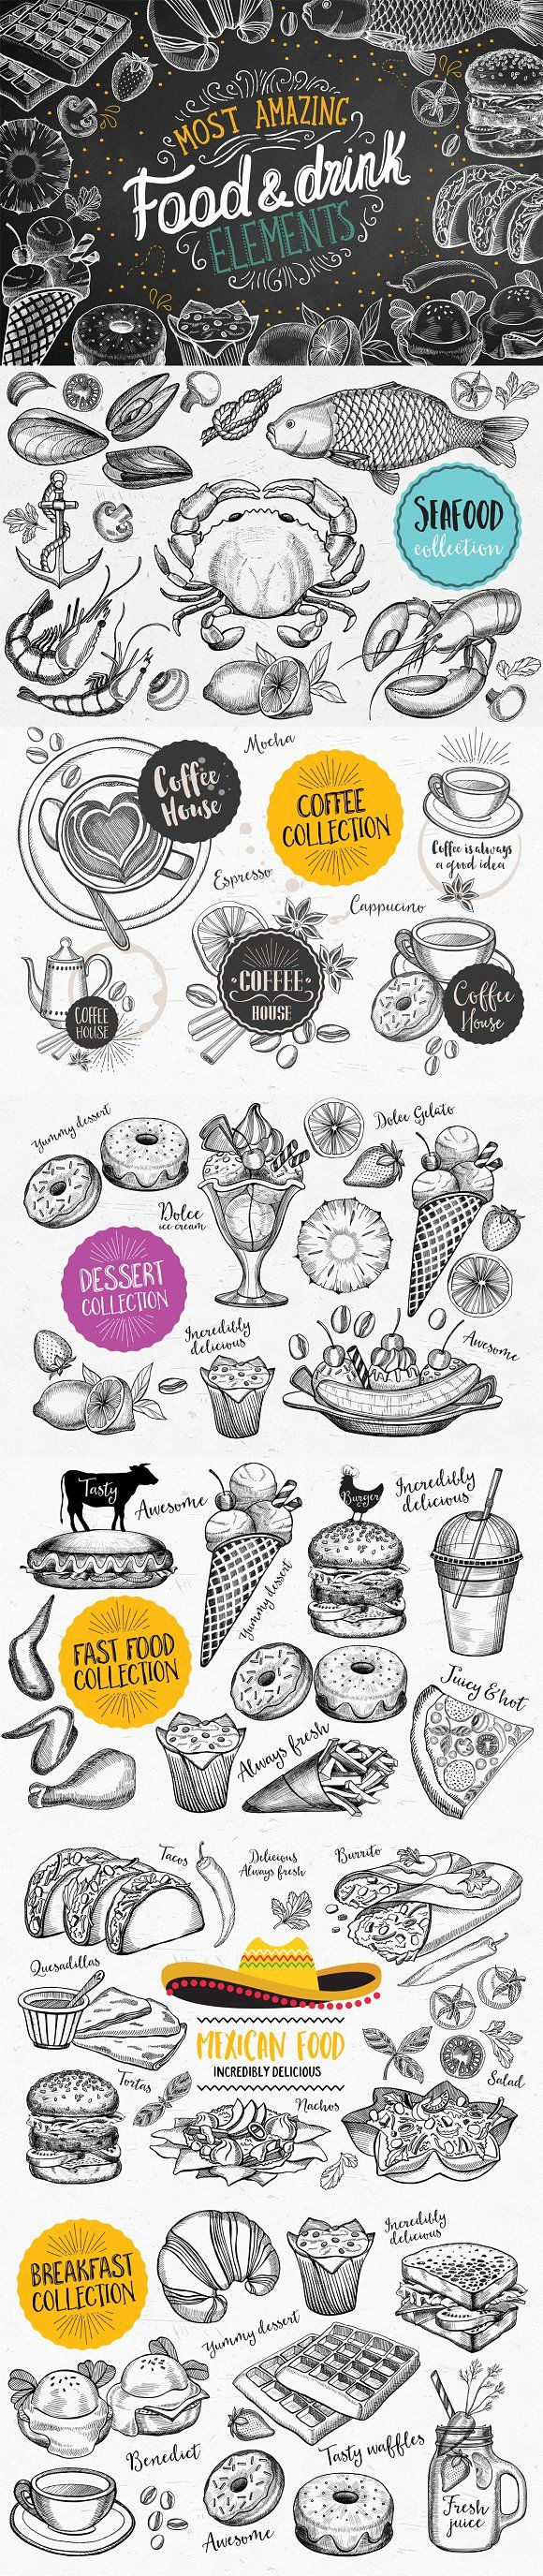 Food Bundle 75% off by BarcelonaShop on @creativemarket. Best food illustrations for businesses like food menu, blogging, graphic design, poster. More #doodle #illustrations for your #brand you can download here ➝ https://creativemarket.com/graphics/illustrations?u=BarcelonaDesignShop